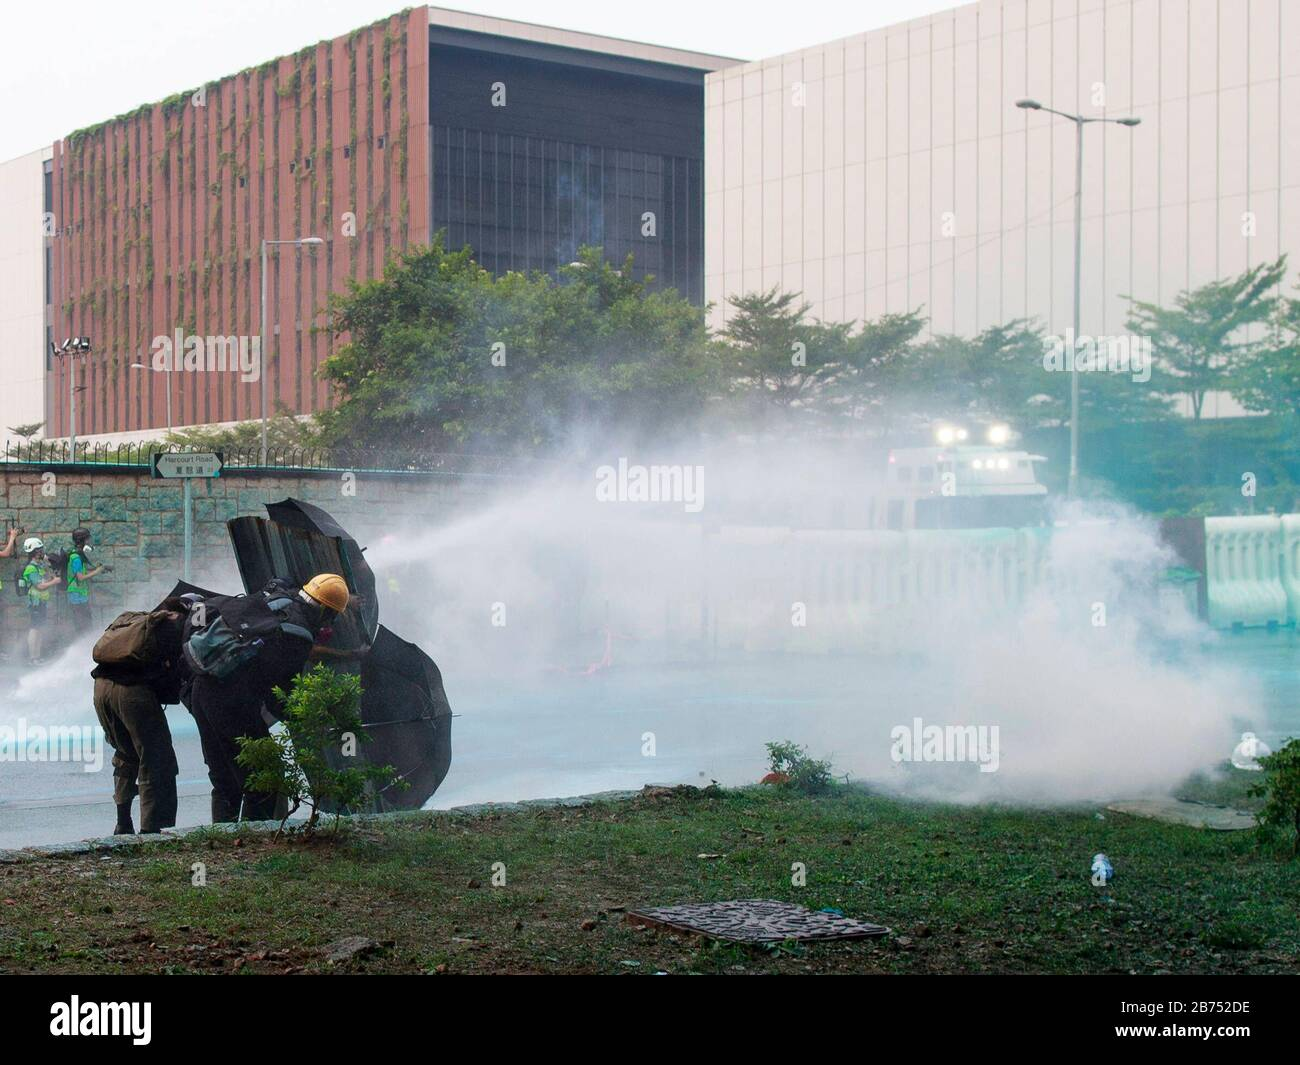 Police use water cannon to disperse protesters at Admiralty. Protesters clash with Anti-riot police during an unauthorised global anti-totalitarian march in Hong Kong, China. Stock Photo